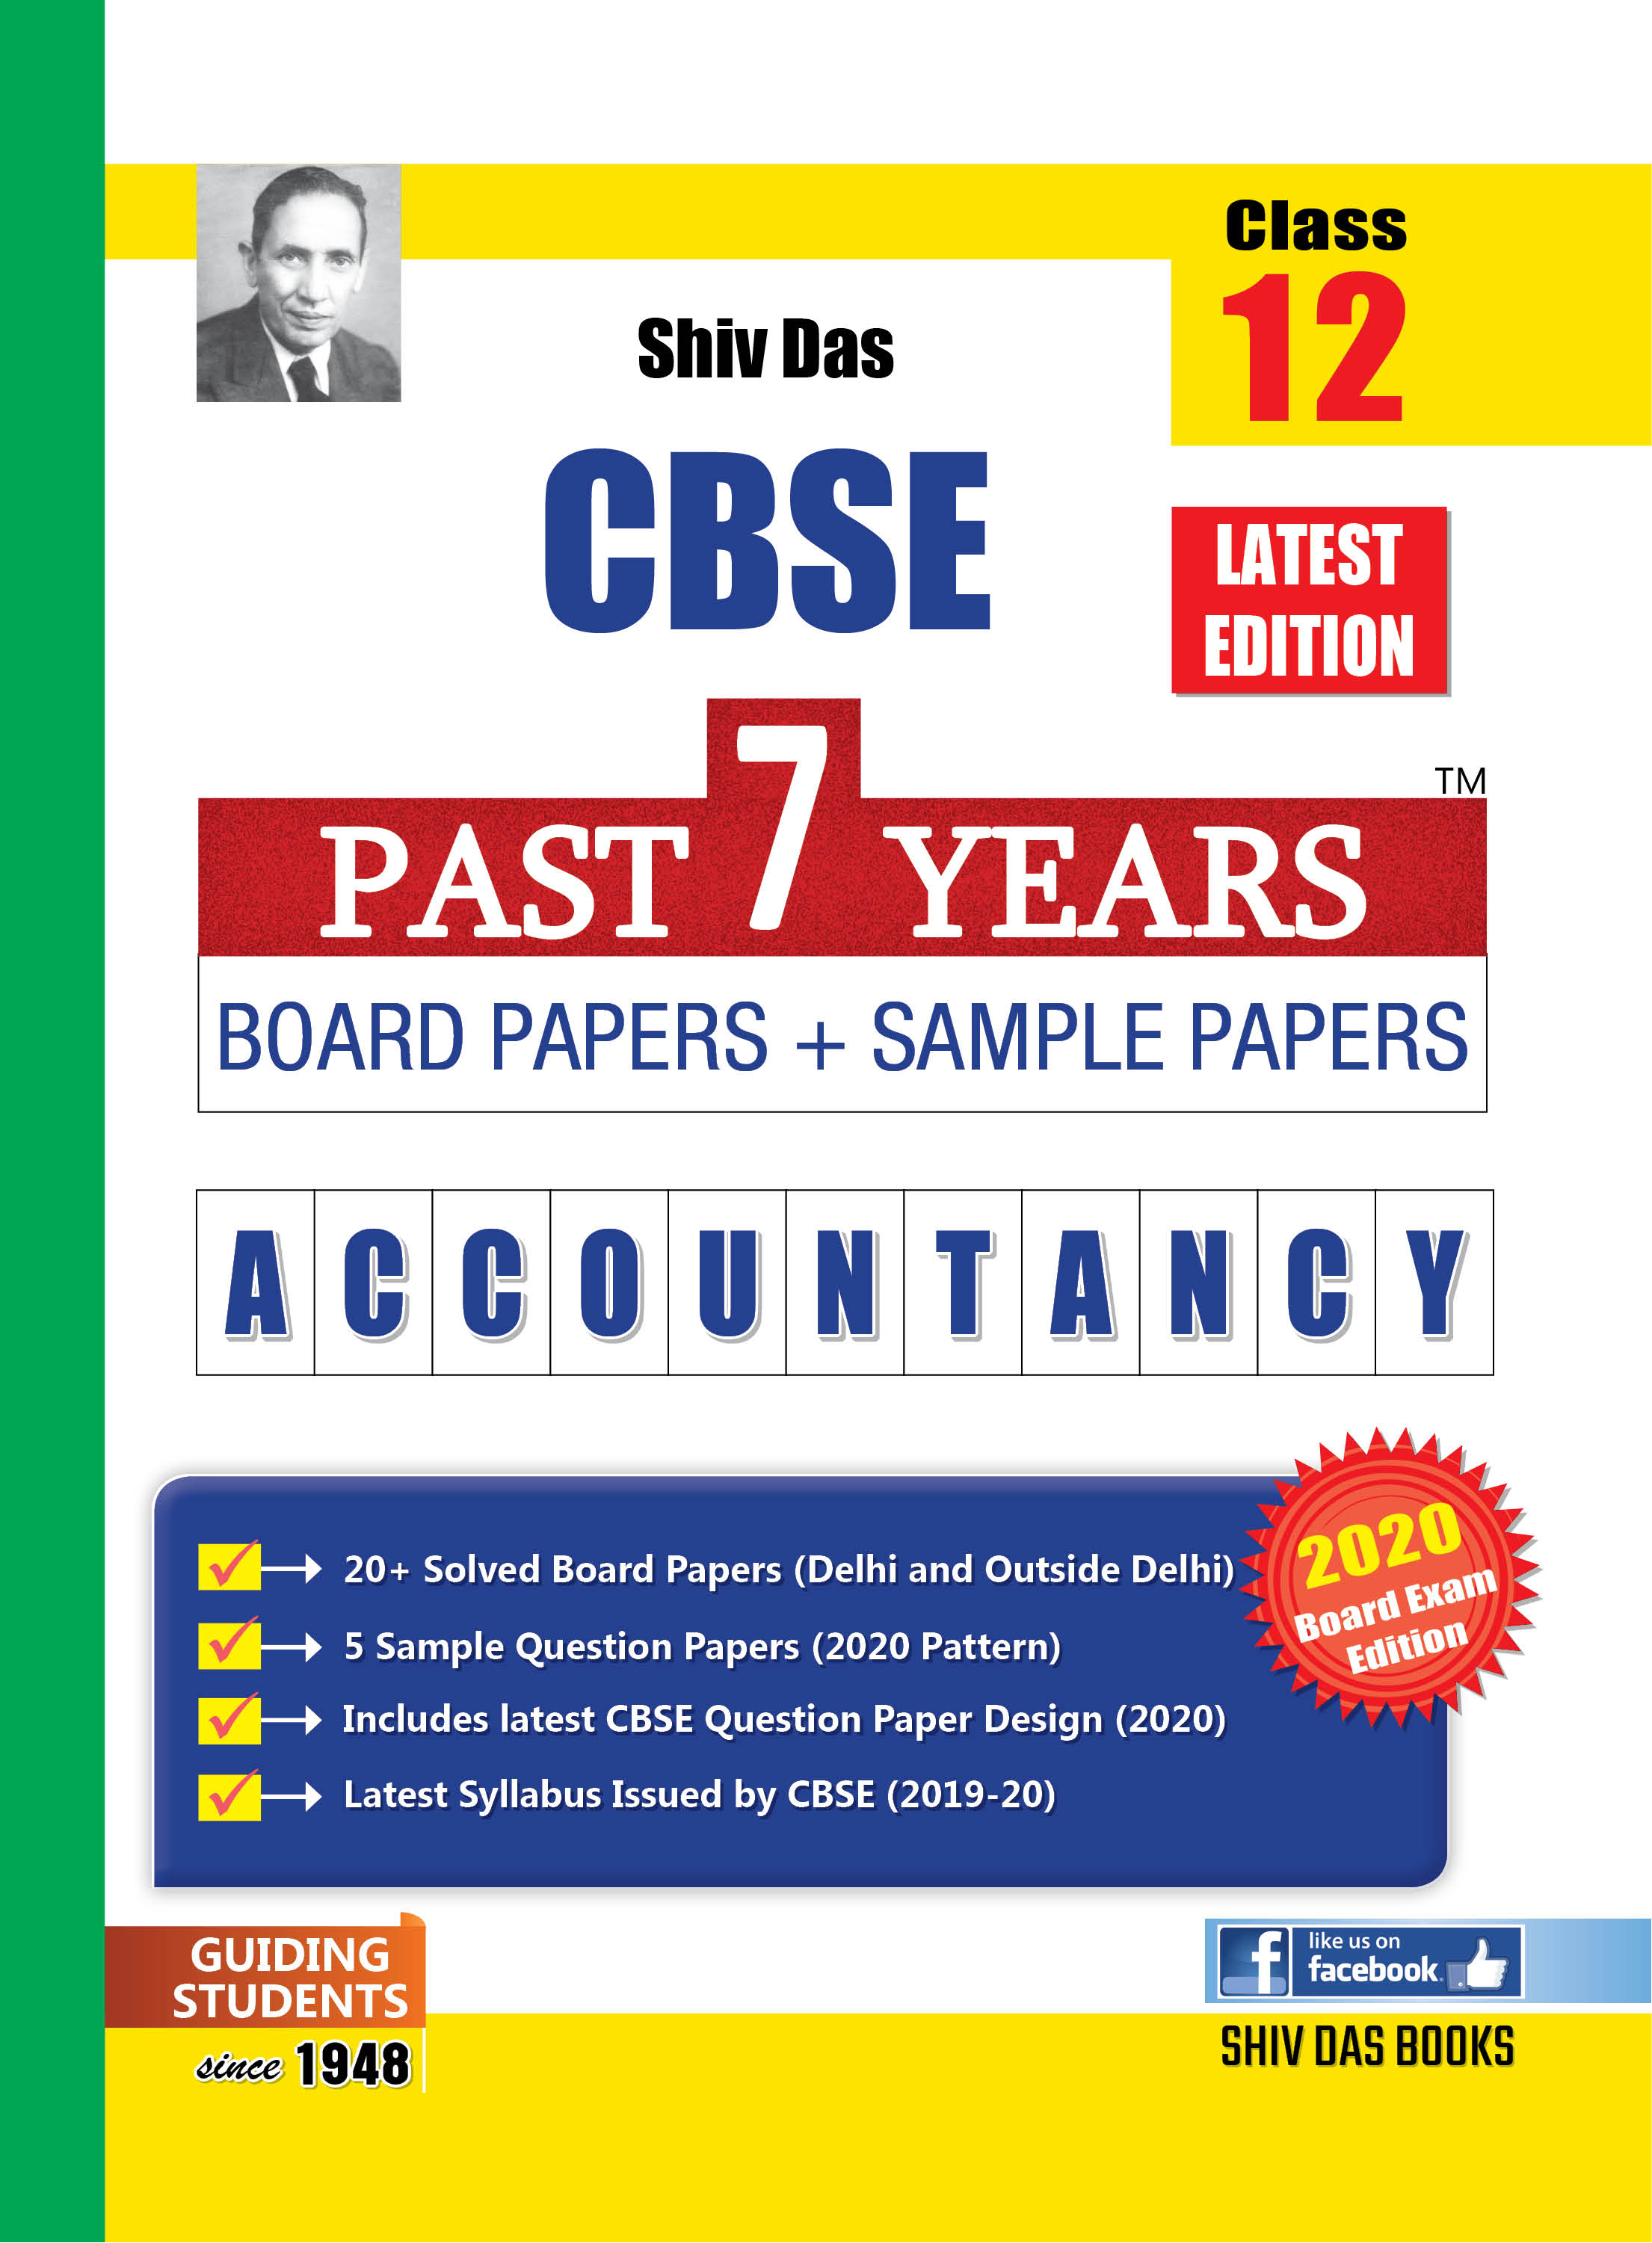 CBSE Past 7 Years Solved Board Papers+Sample Papers for Class 12 Accountancy (2020 Board Exam Edition)